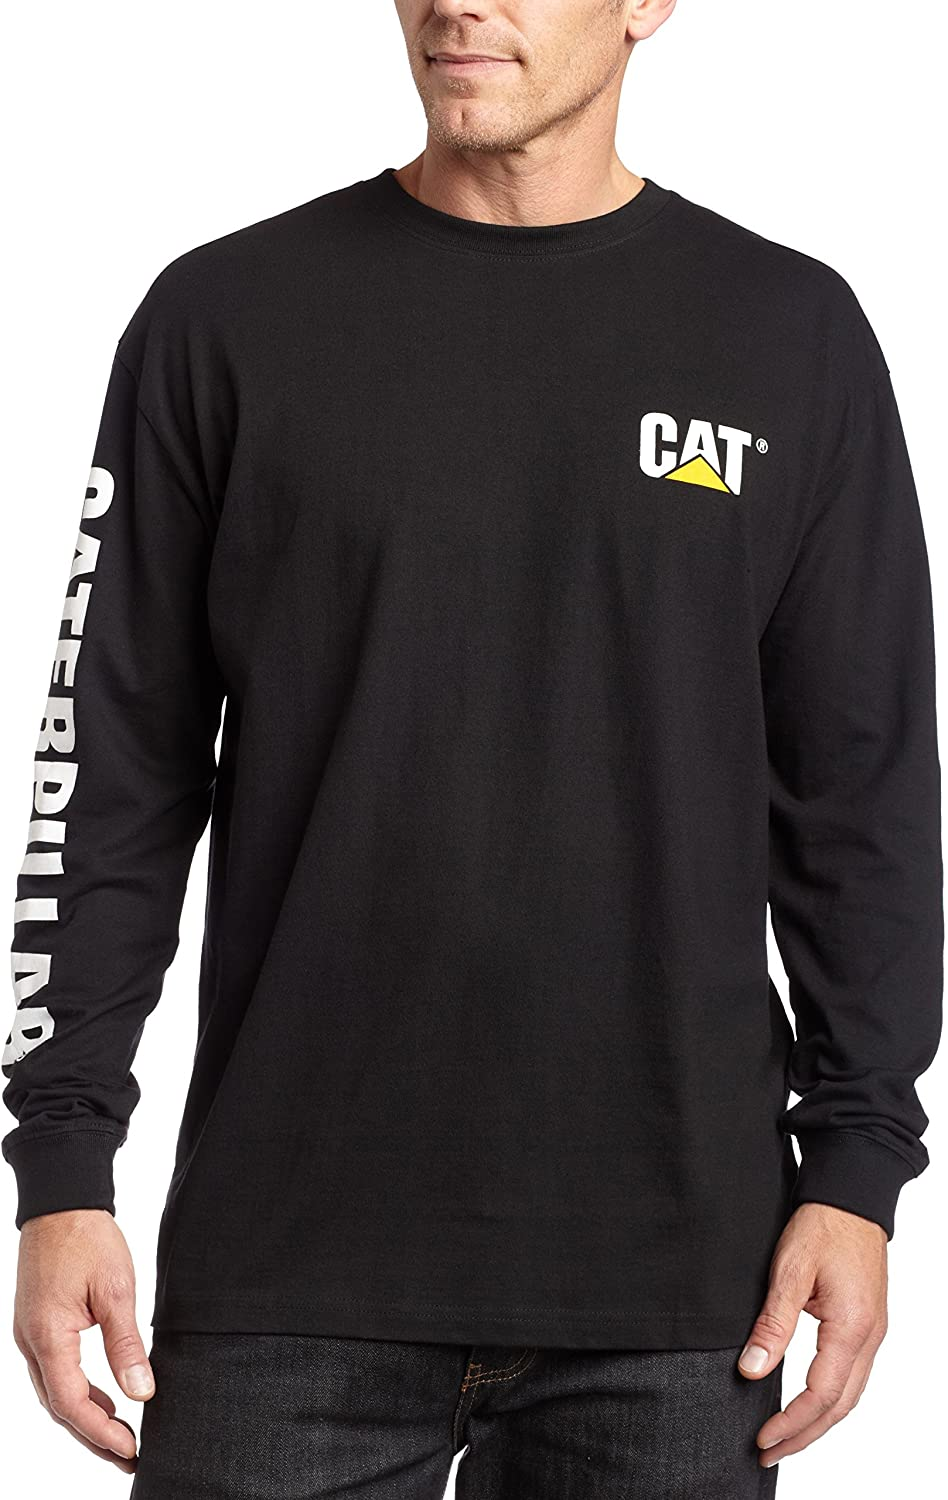 Caterpillar Men's Trademark Banner Long Sleeve T-Shirt (Regular and Big & Tall Sizes)